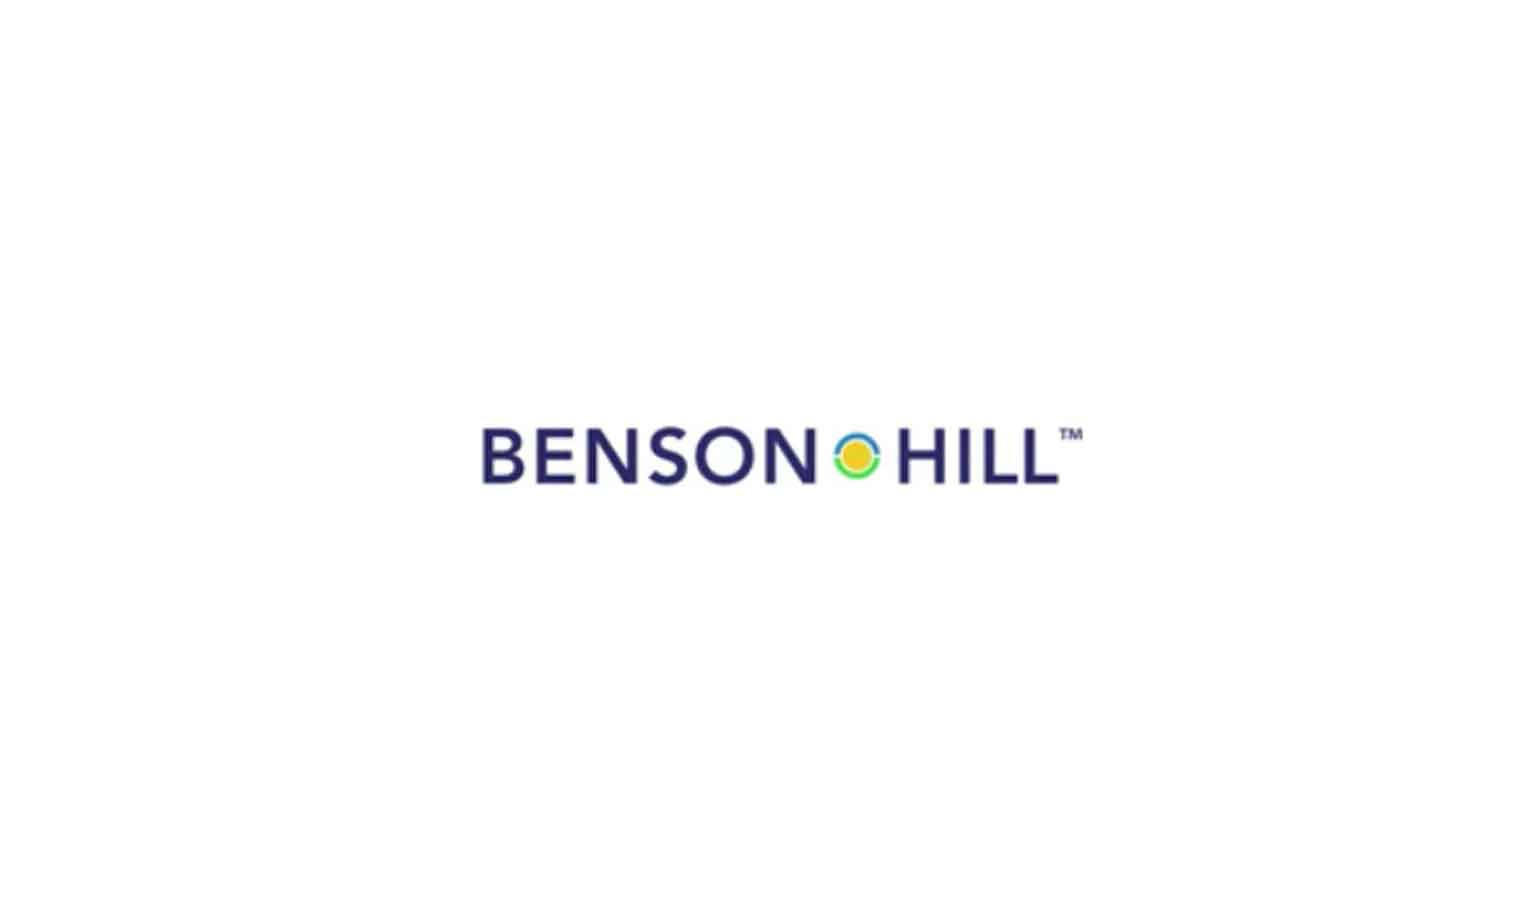 Benson Hill empowers innovators to unlock nature's genetic diversity from plant to plate, with the purpose of creating healthier, great-tasting food and ingredient options that are both widely accessible and sustainable.